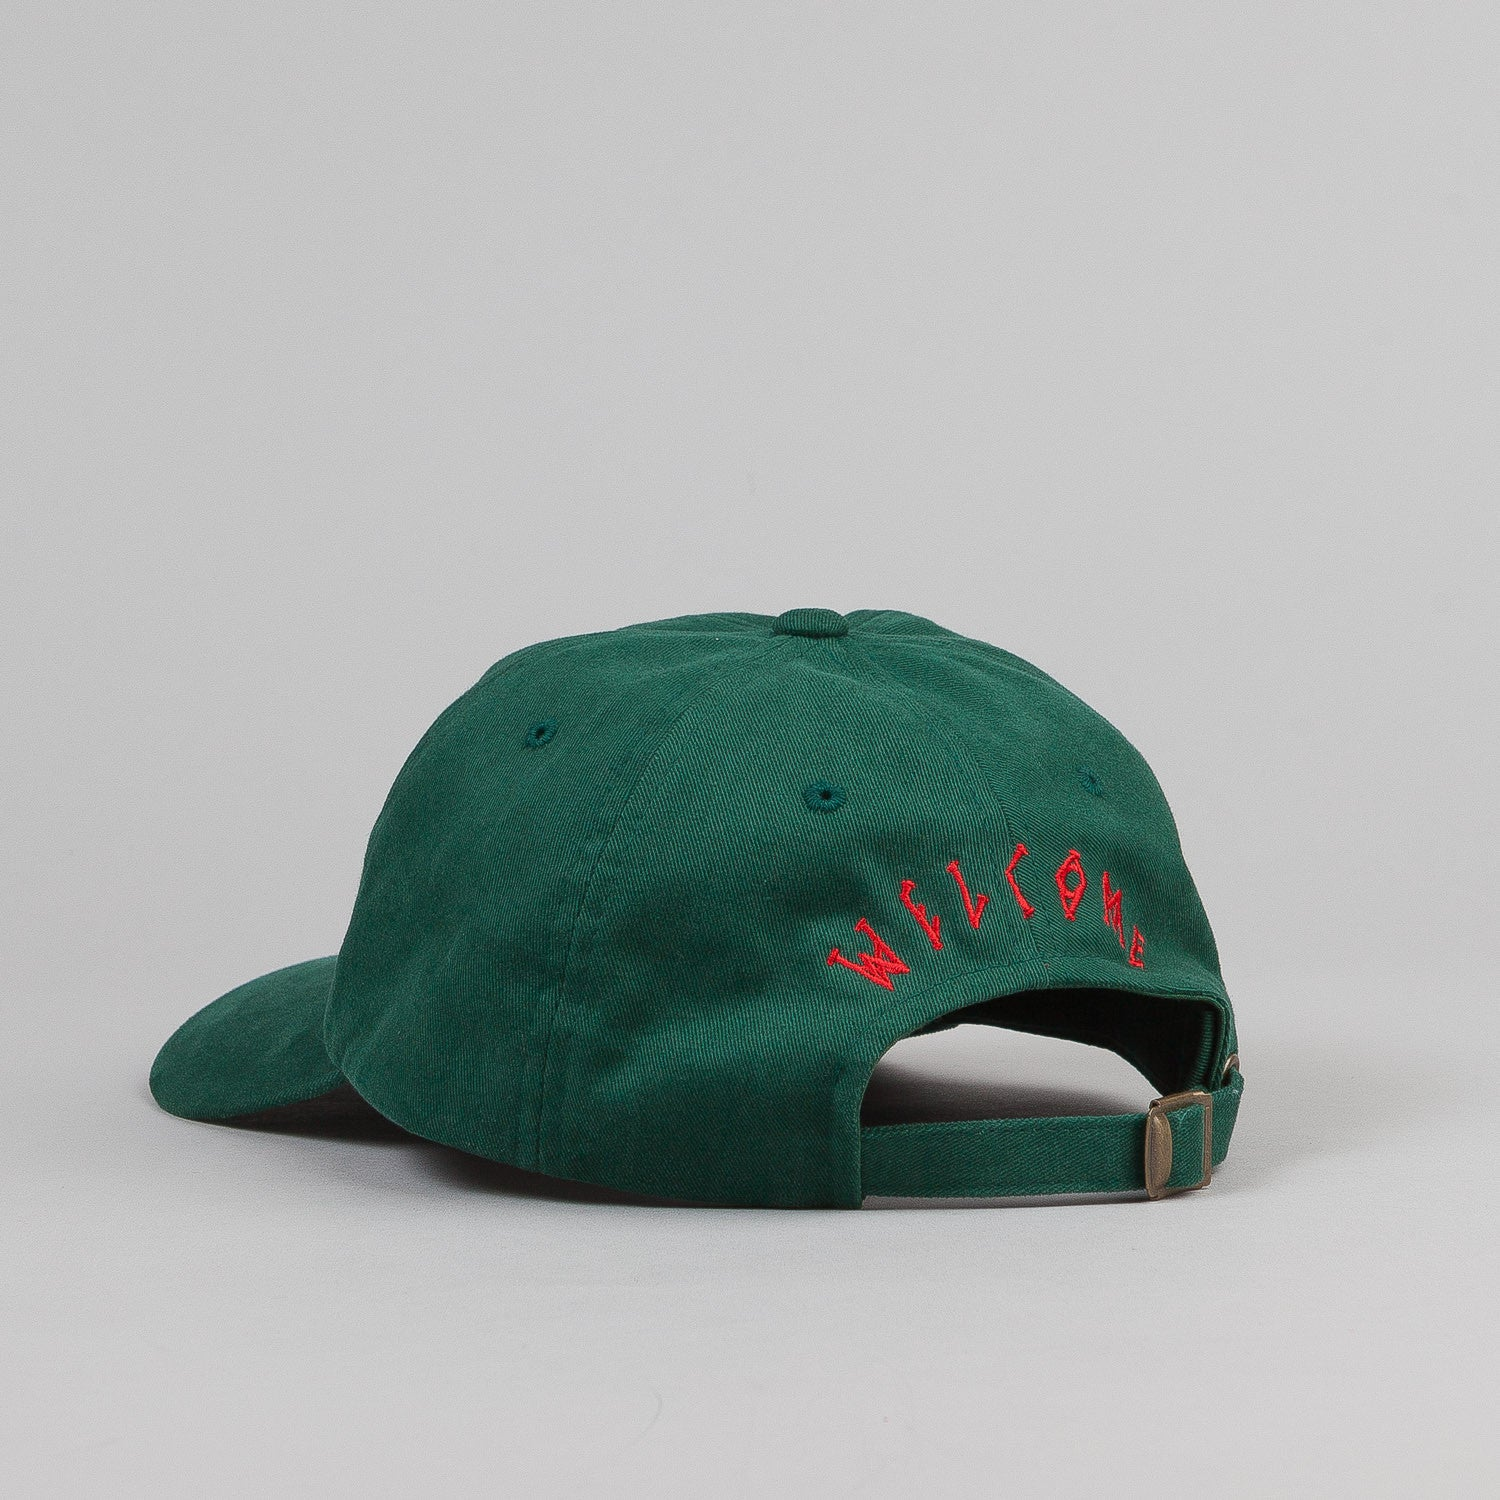 Welcome Rocking Dog Slider Cap - Green / Red